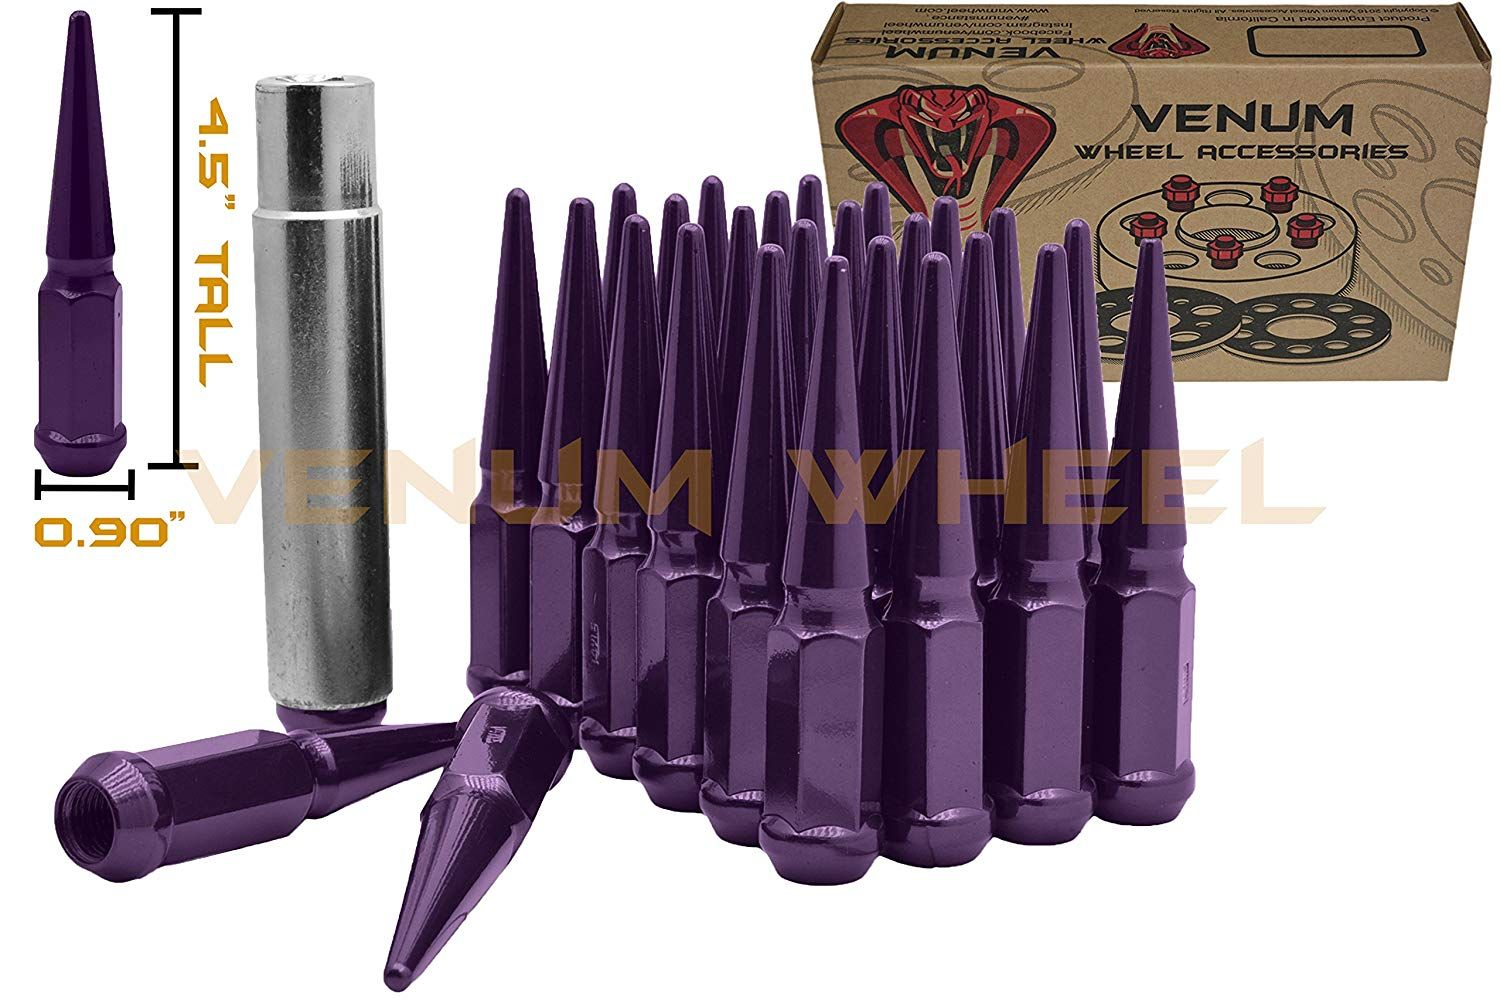 Amazon Com Venum Wheel Accessories 24 Purple M14x1 5 Acorn Seat Spike Lug Nut Steel 4 5 Total Length Works With Chevy Wheel Accessories Jeep Cars Vehicles